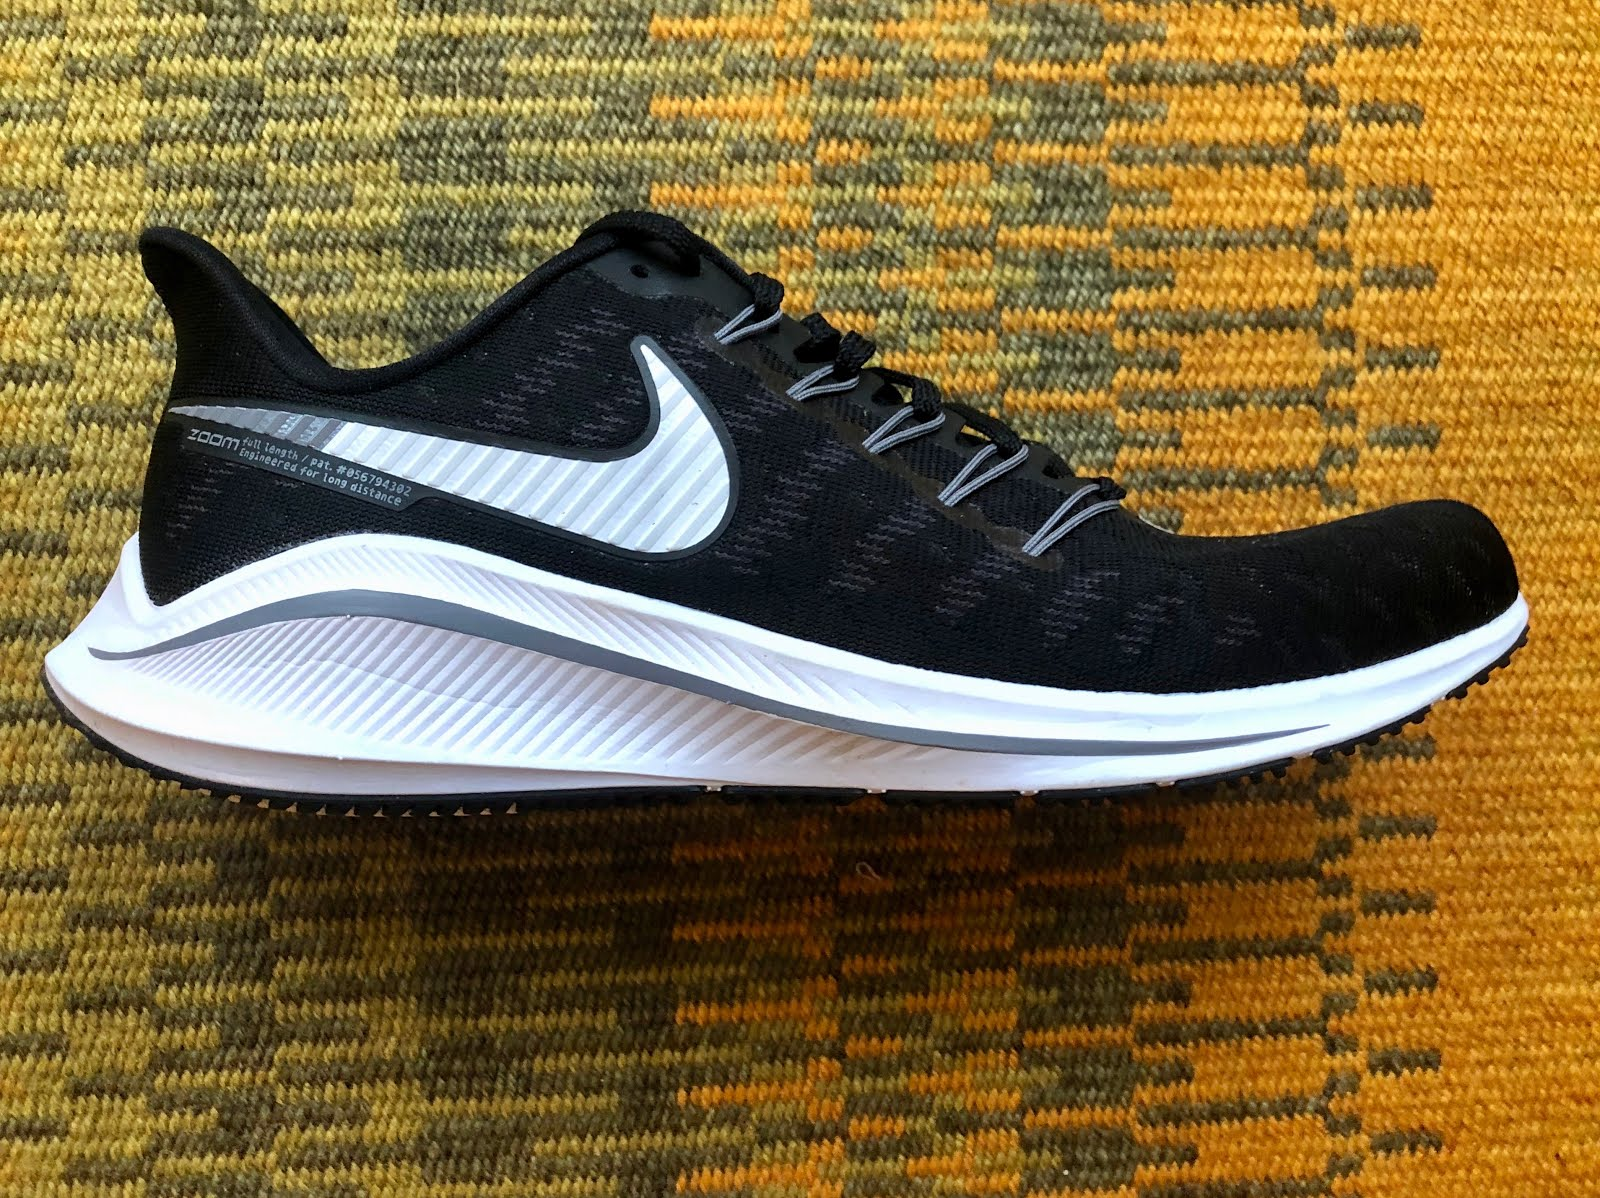 9ed1266735e1 Road Trail Run  Nike Zoom Vomero 14 Review  Fast and Responsive ...